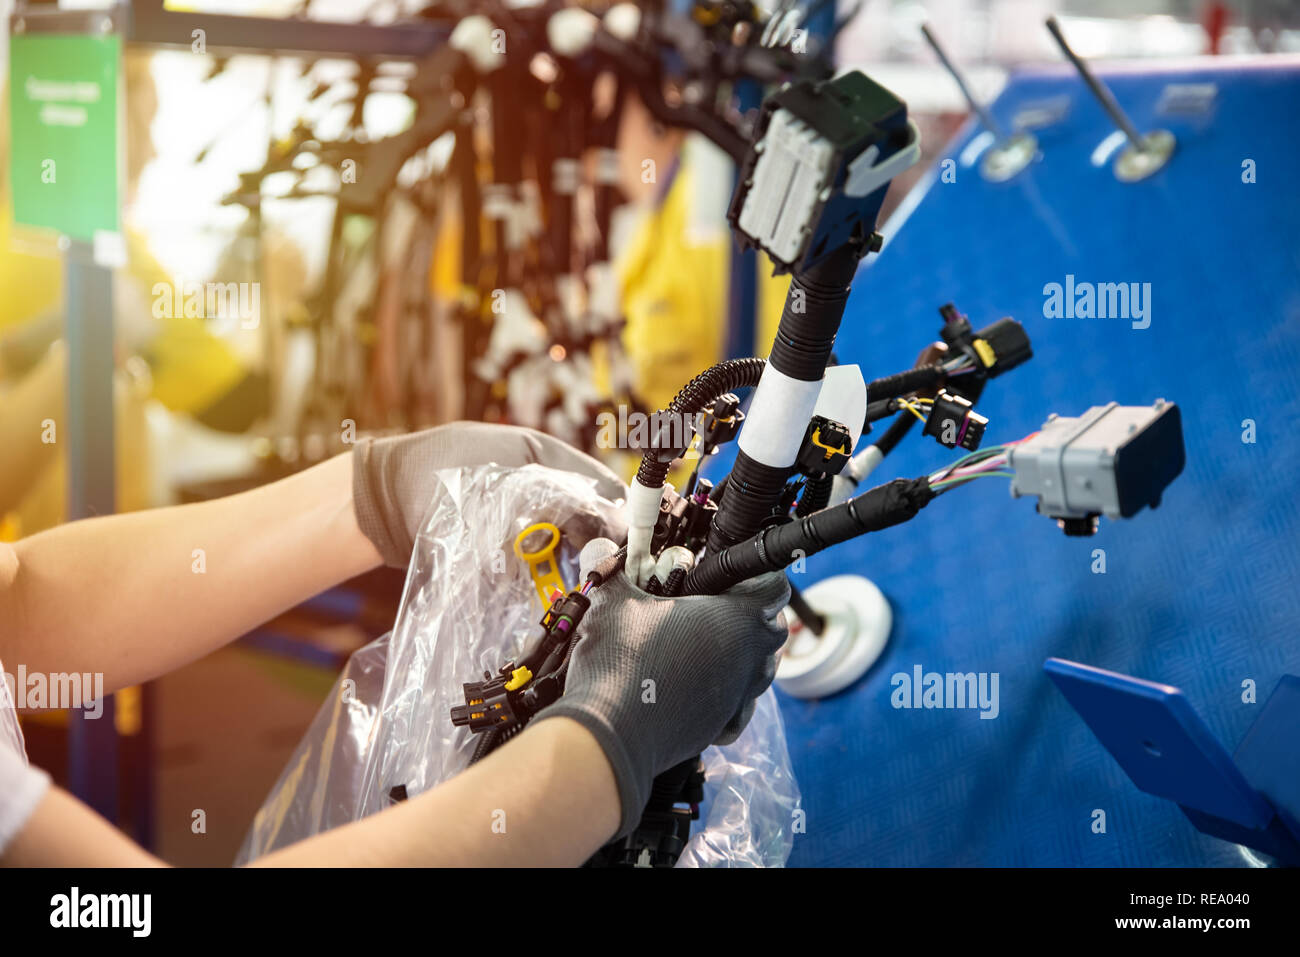 Stupendous Worker Is Packing A Wiring Harnesses Production Line Workflow Wiring Digital Resources Spoatbouhousnl